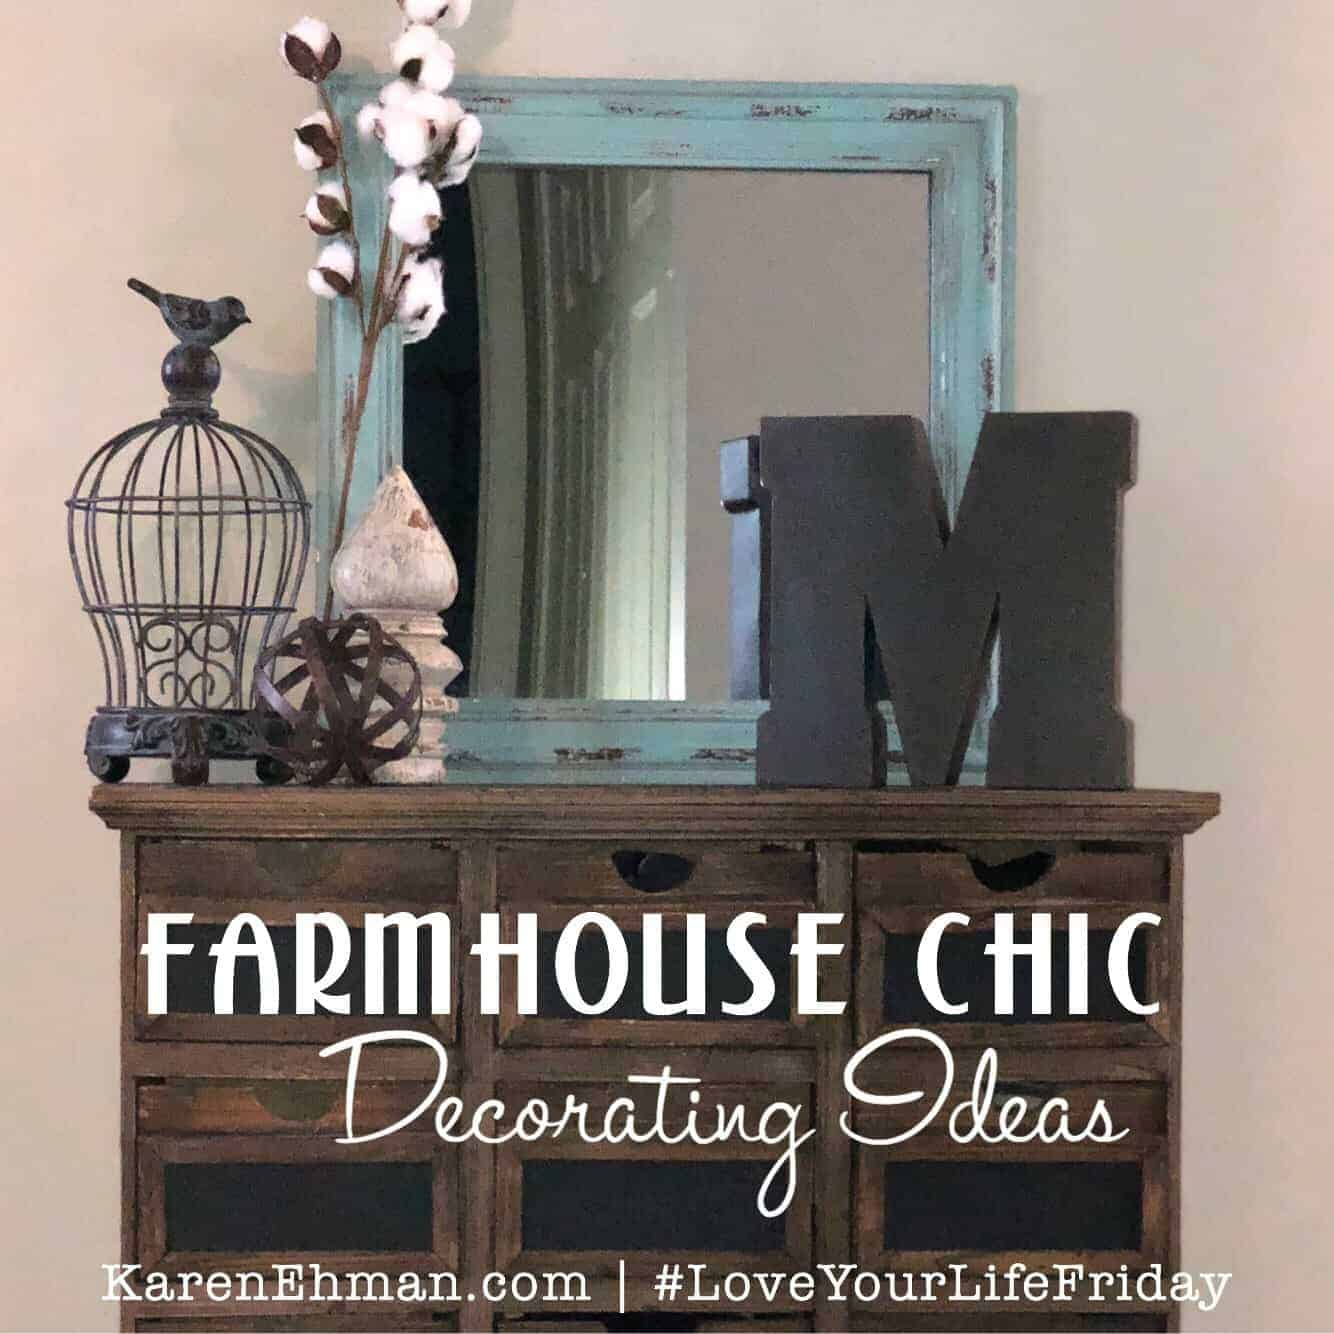 Farmhouse Chic Decorating Ideas for #LoveYourLifeFriday